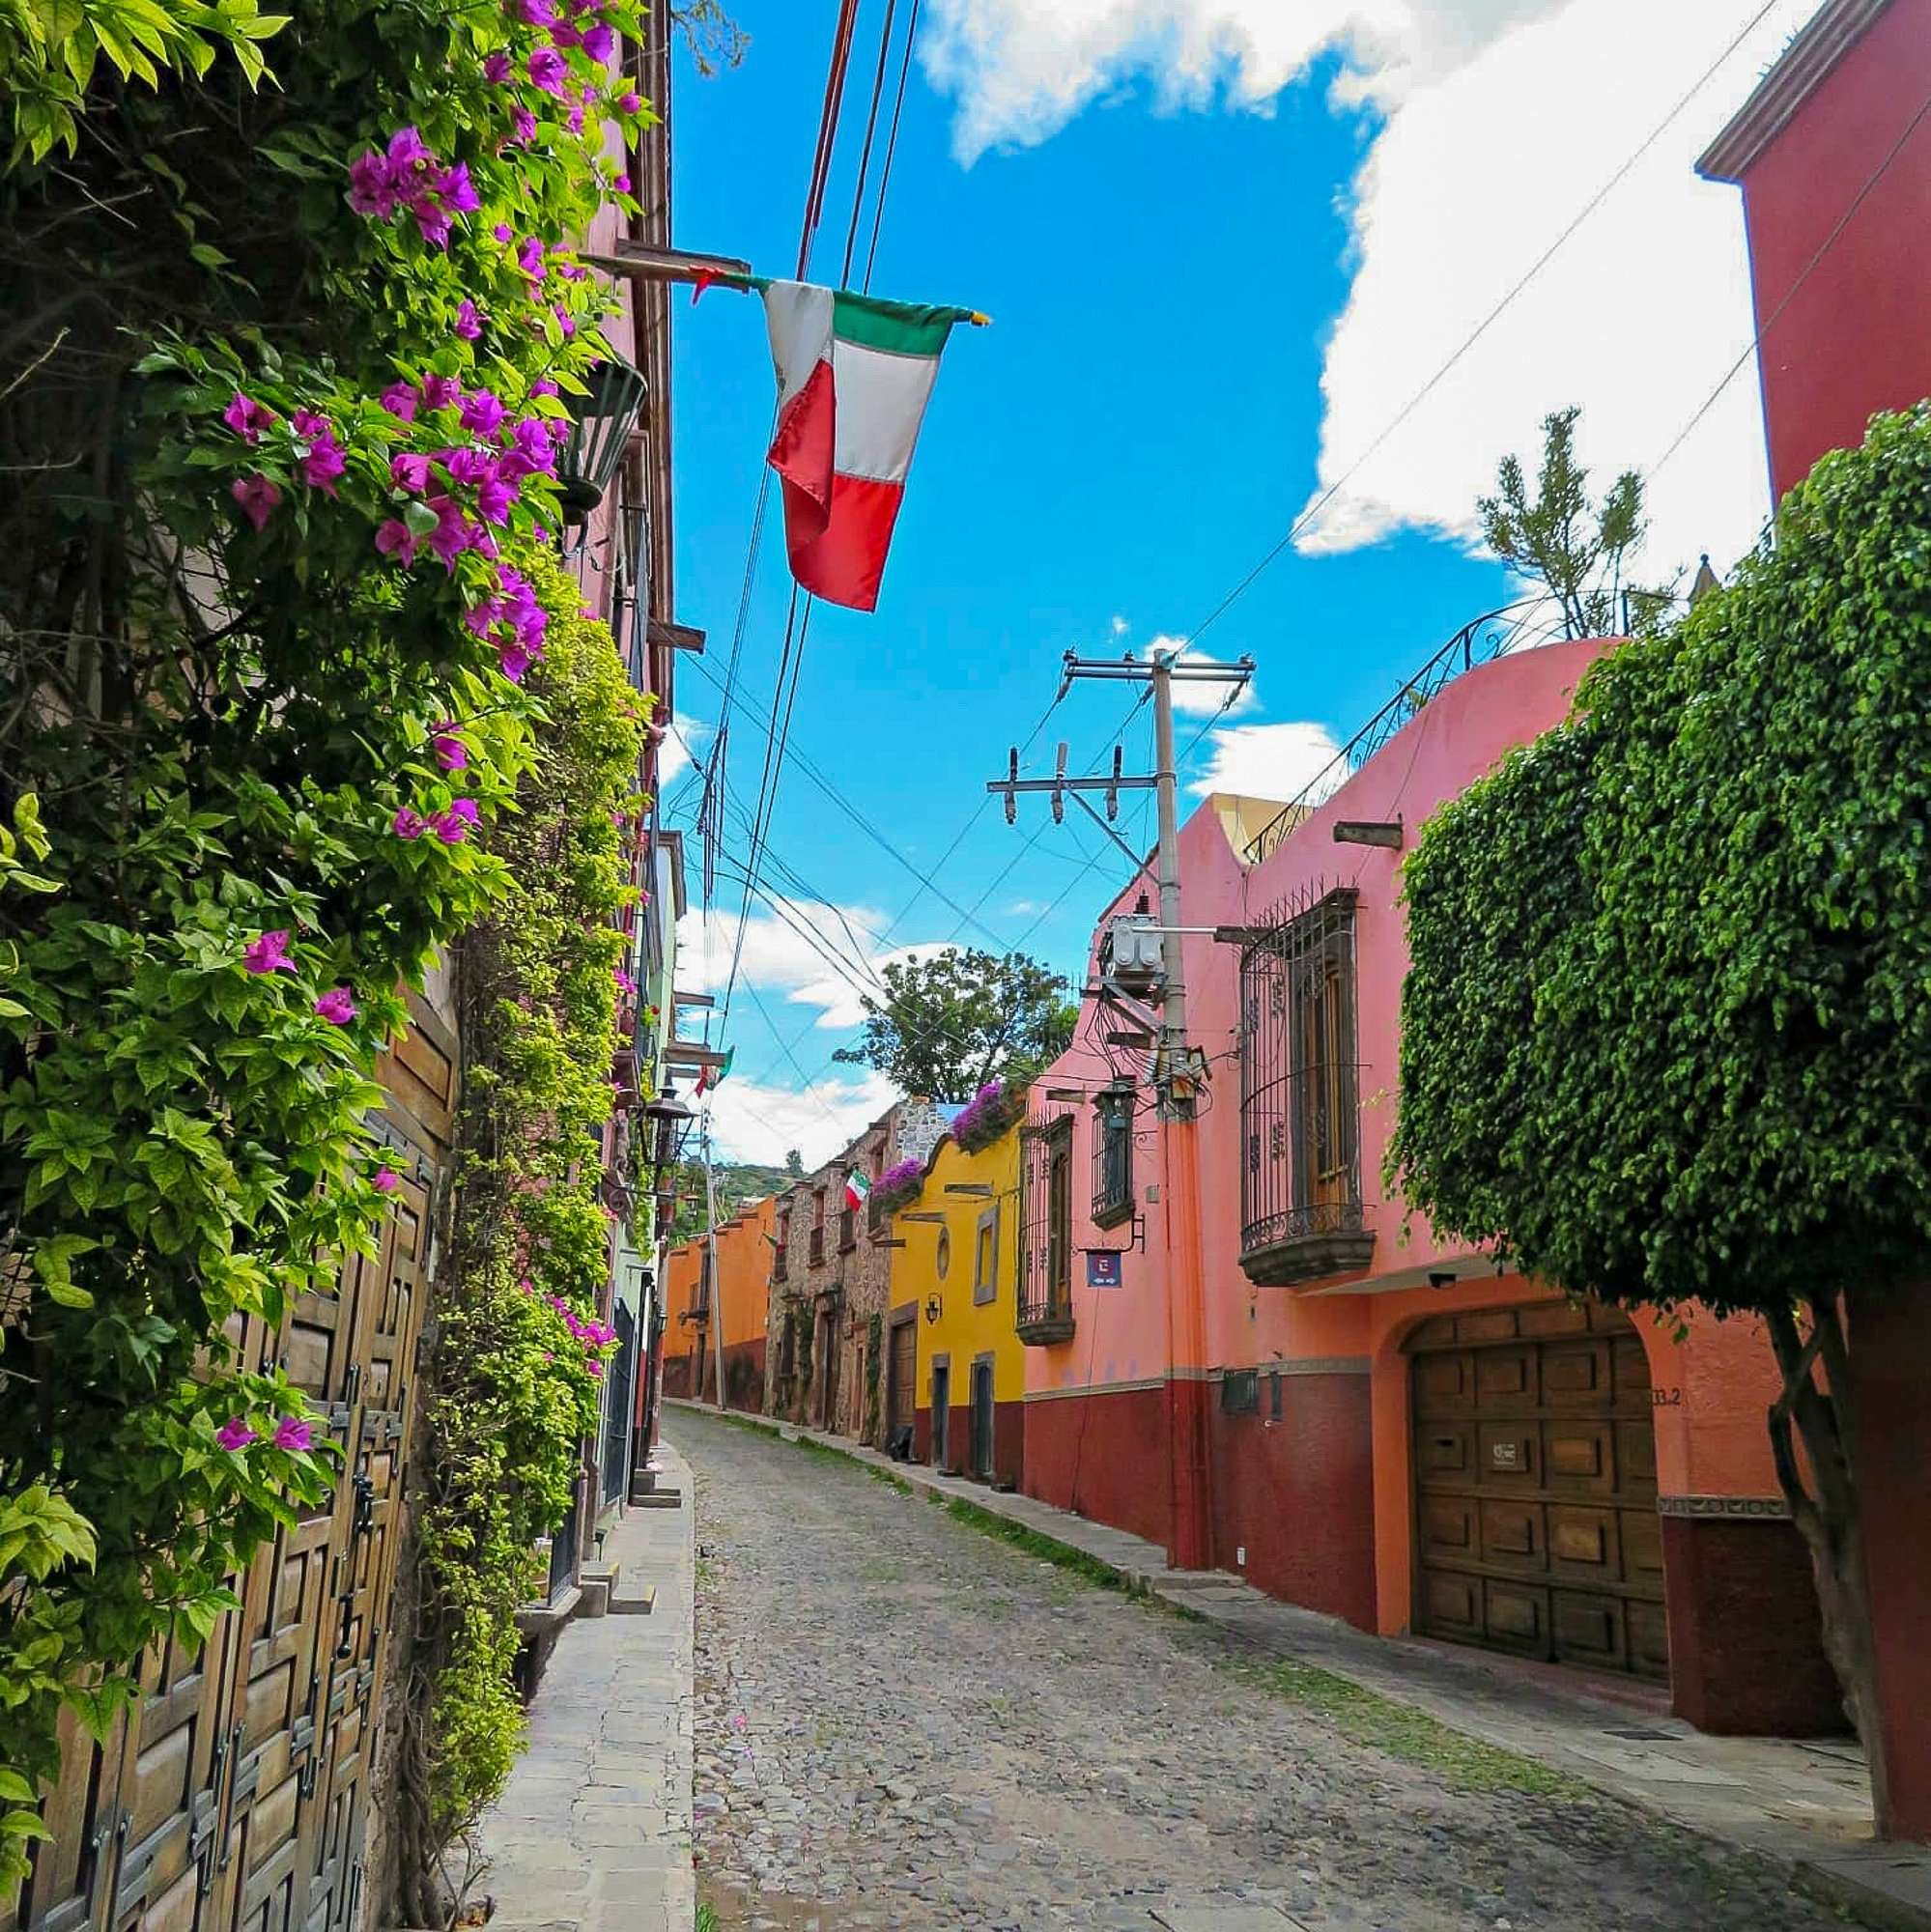 San Miguel de Allende's colorful colonial architecture and cobblestone streets